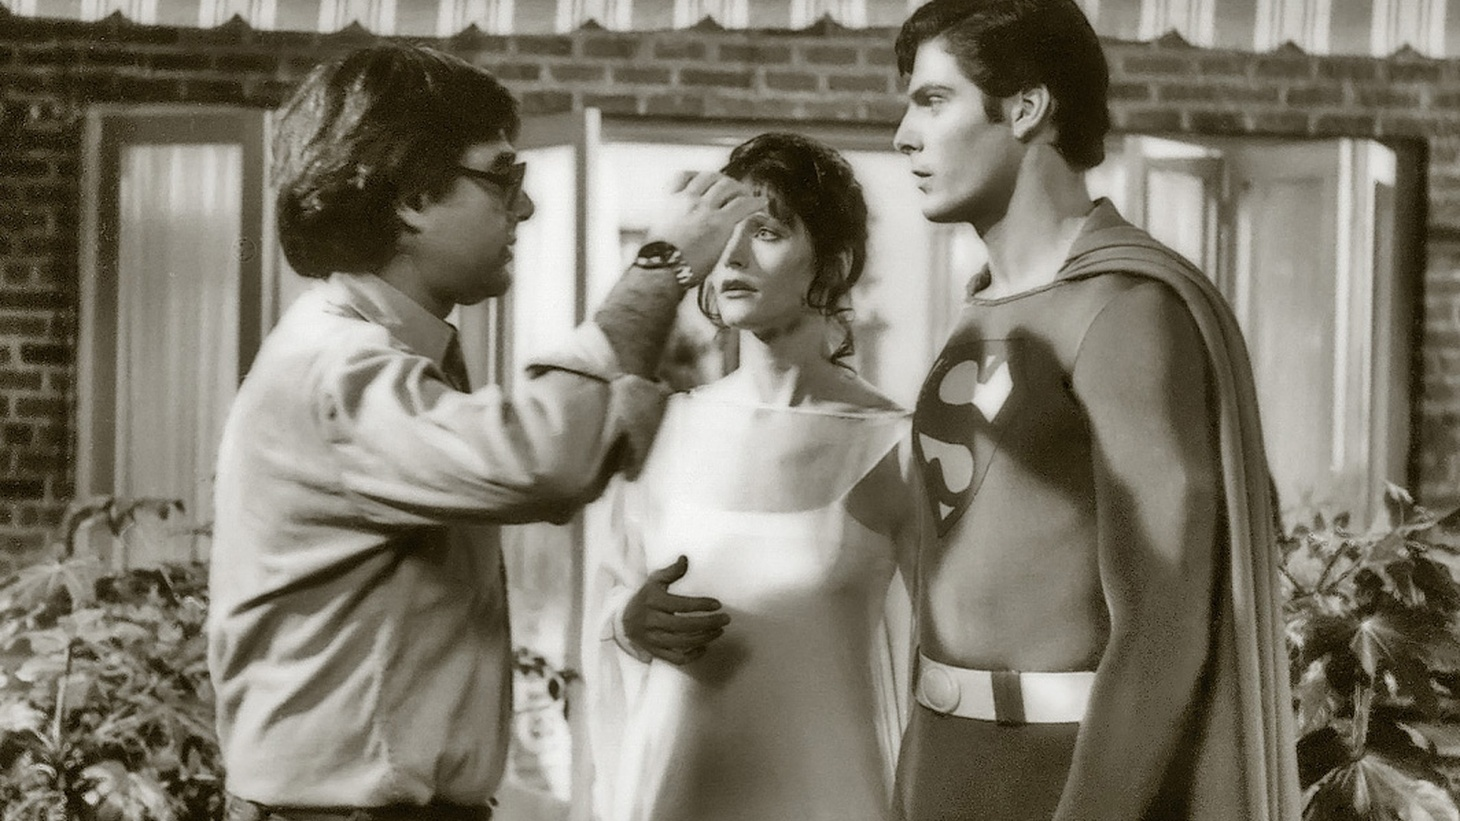 Veteran director Richard Donner tells us about the behind-the-scenes adventures of making the original comic book blockbuster Superman in 1978.